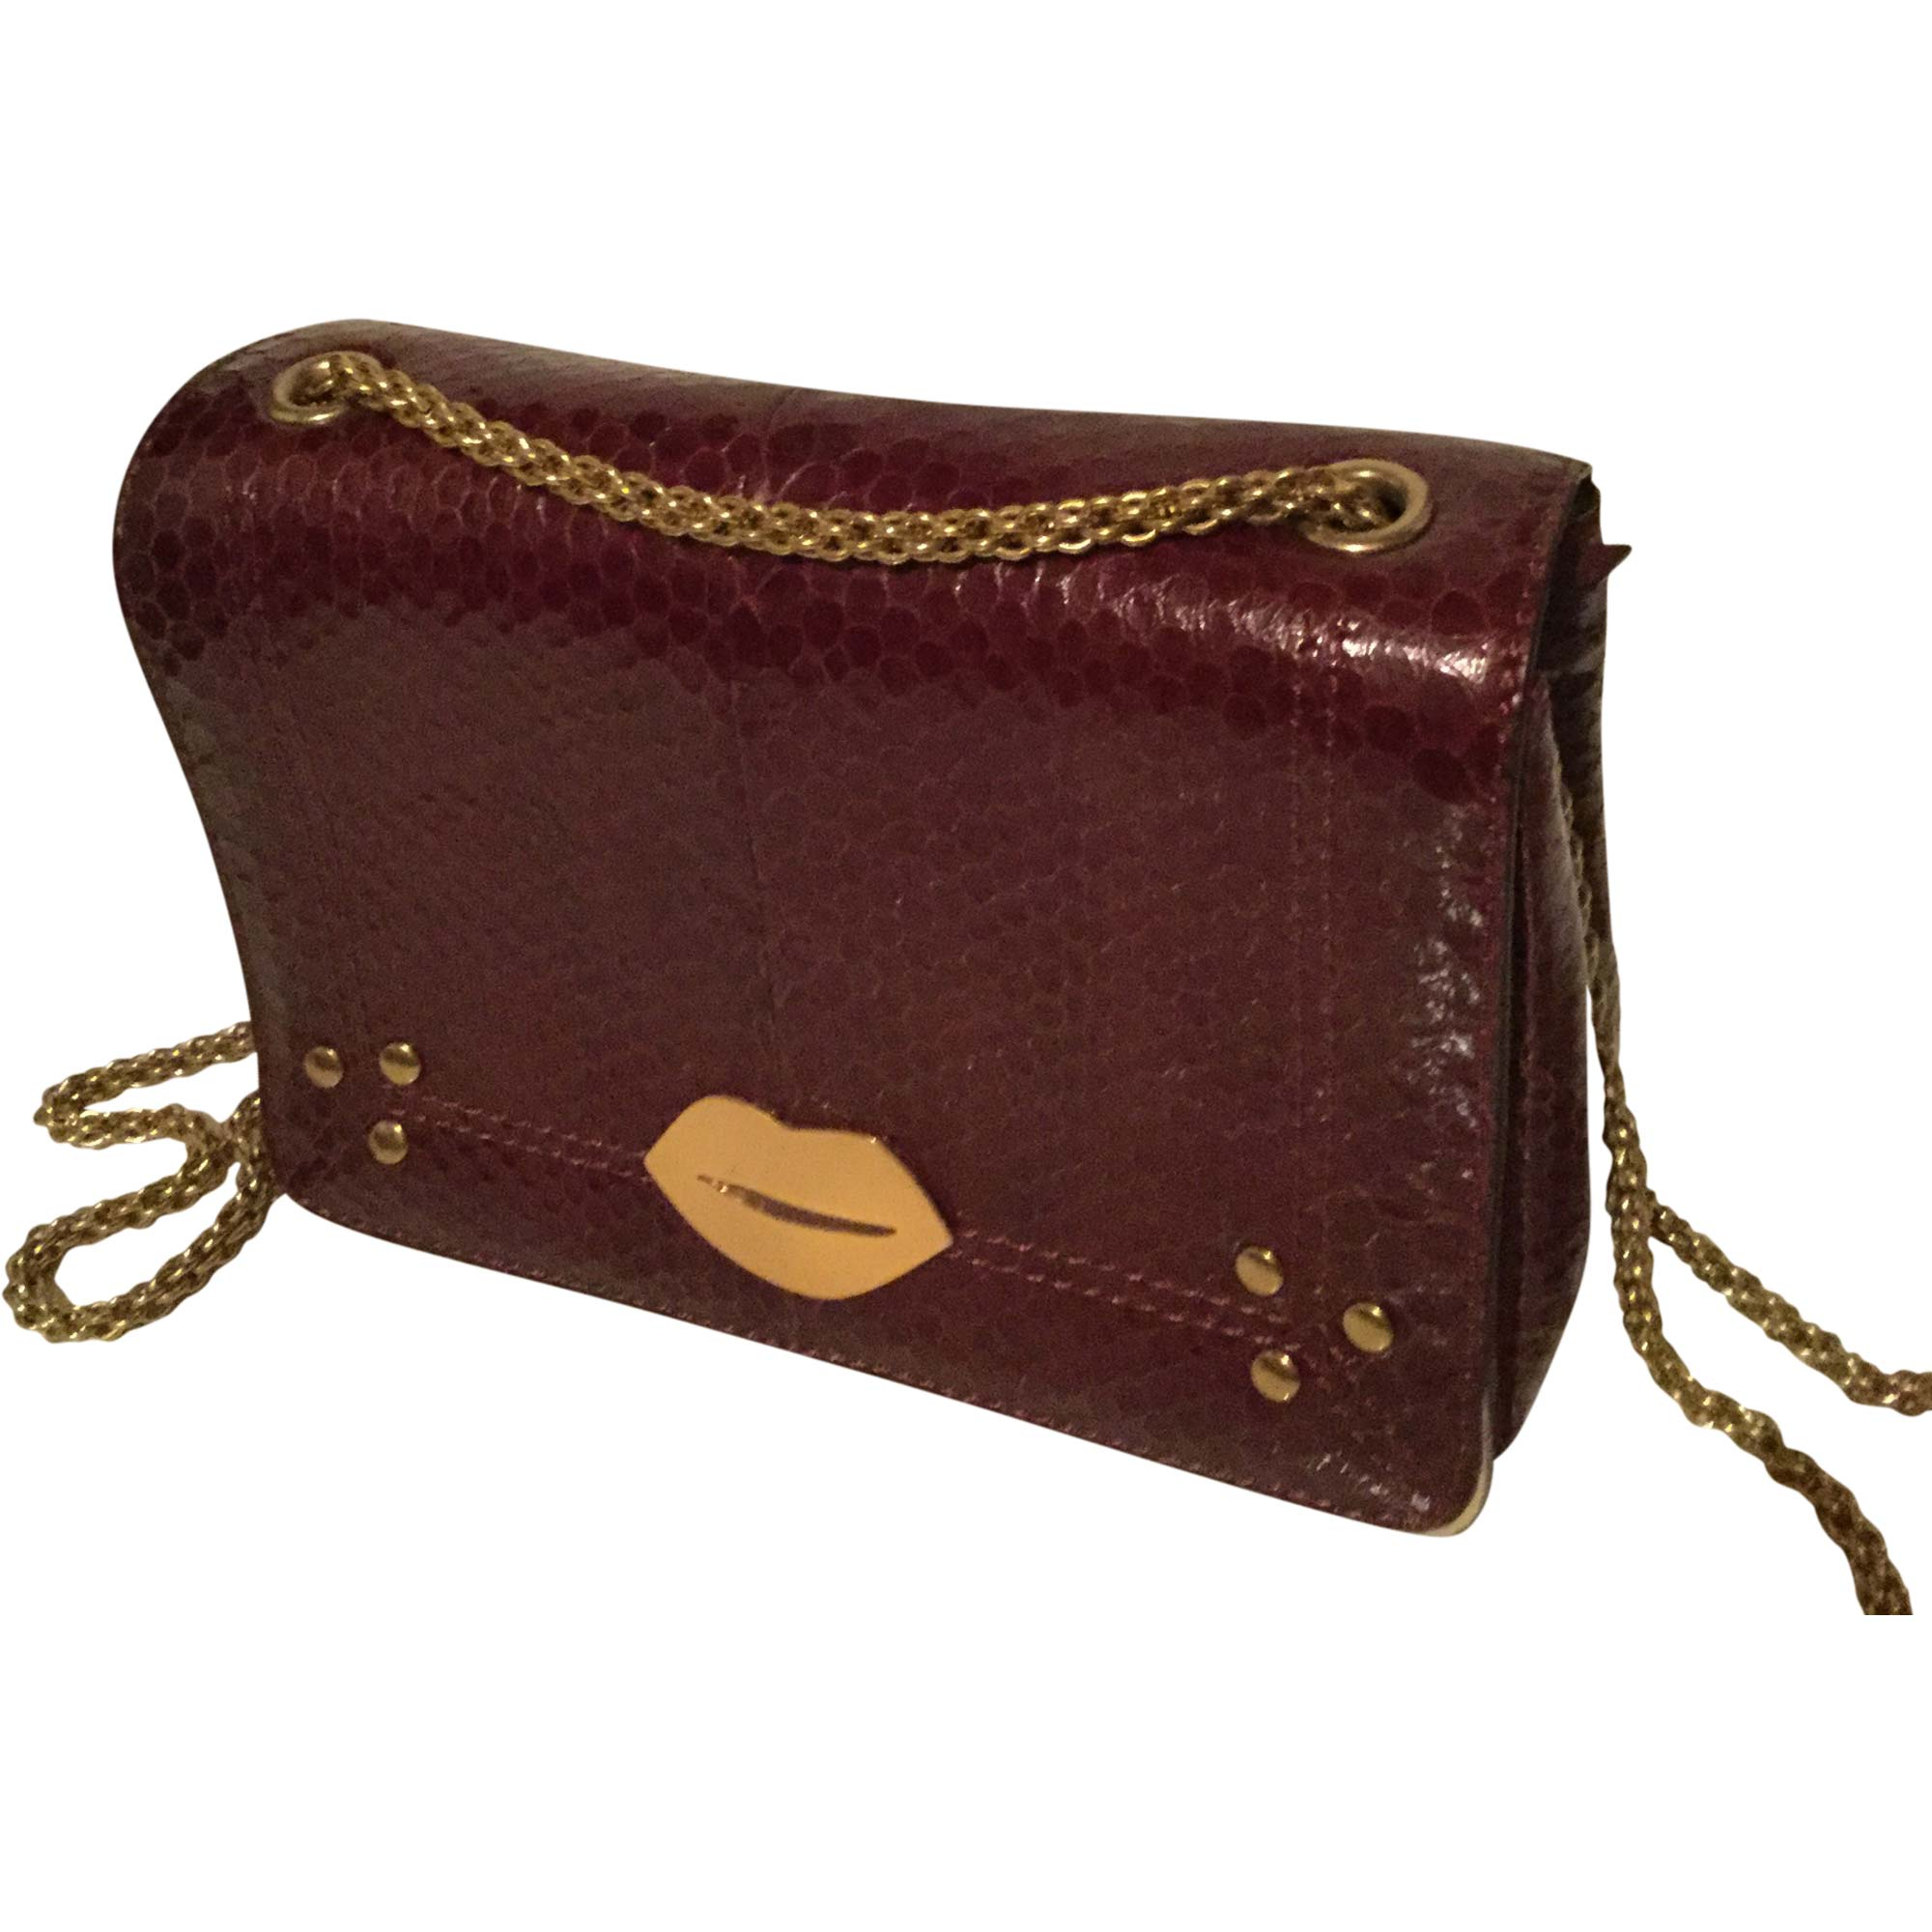 Borsa a tracolla in pelle JEROME DREYFUSS Rosso, bordeaux